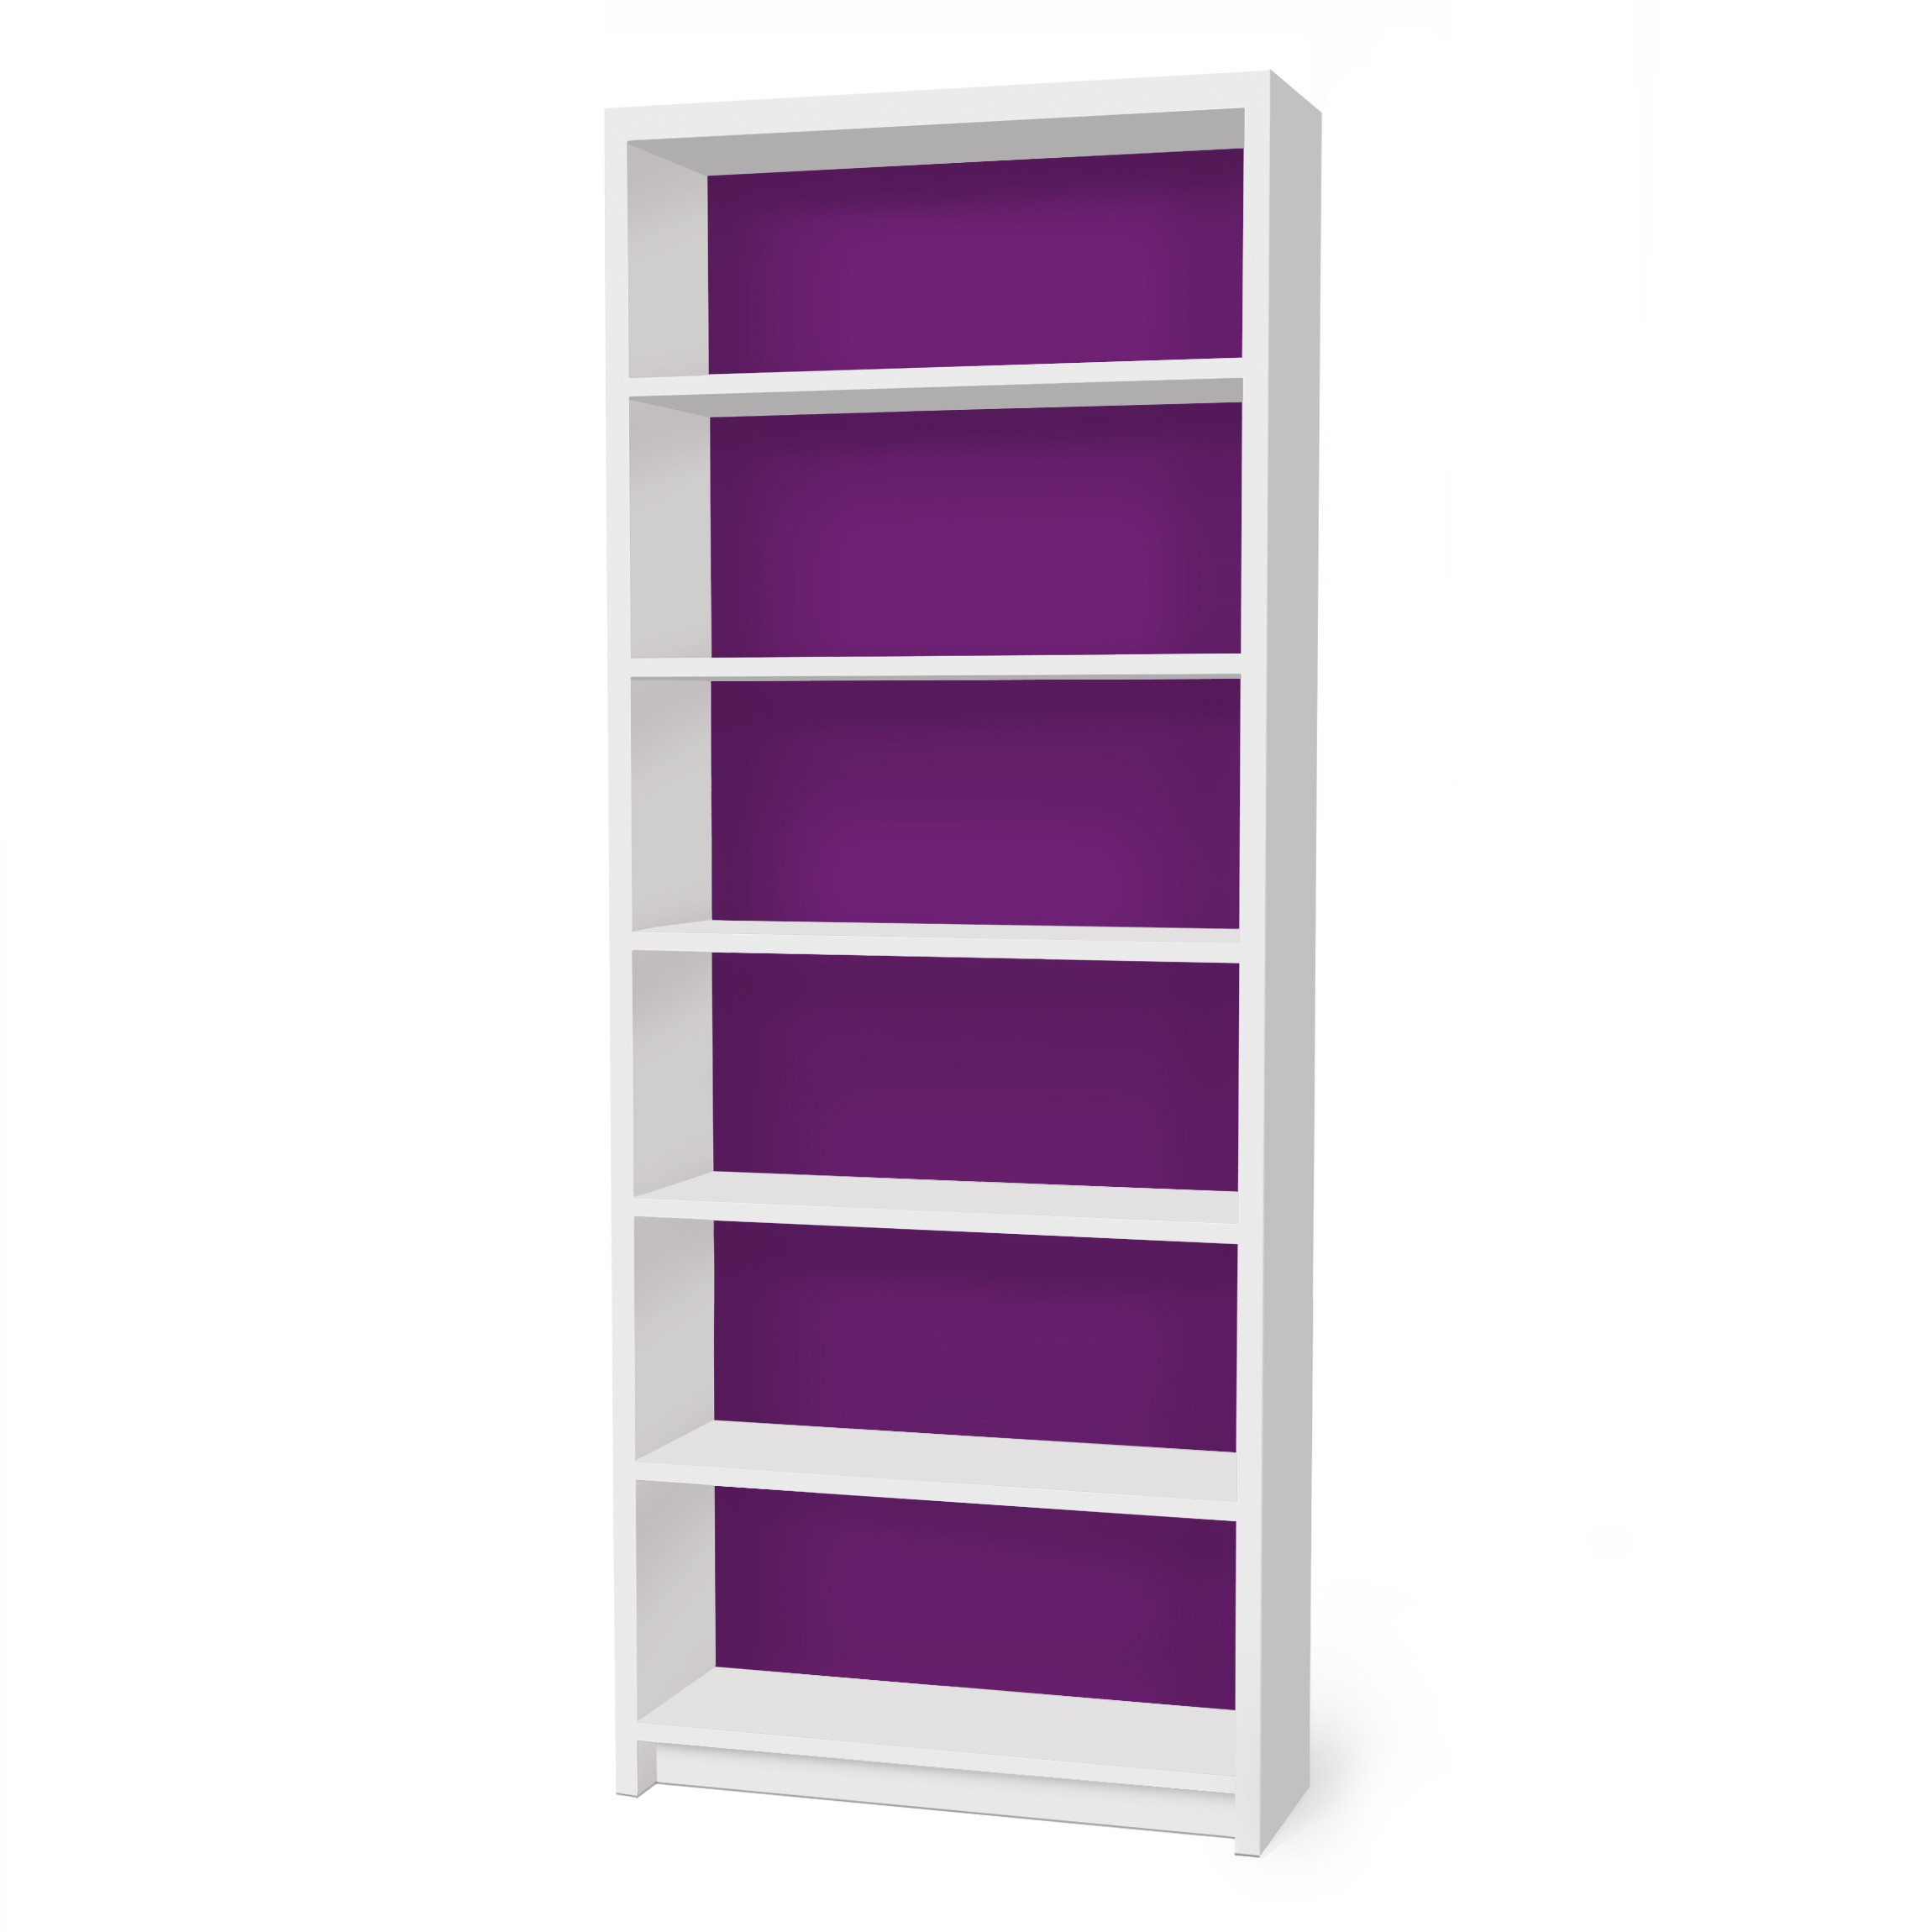 m belfolie f r ikea billy regal klebefolie colour purple. Black Bedroom Furniture Sets. Home Design Ideas